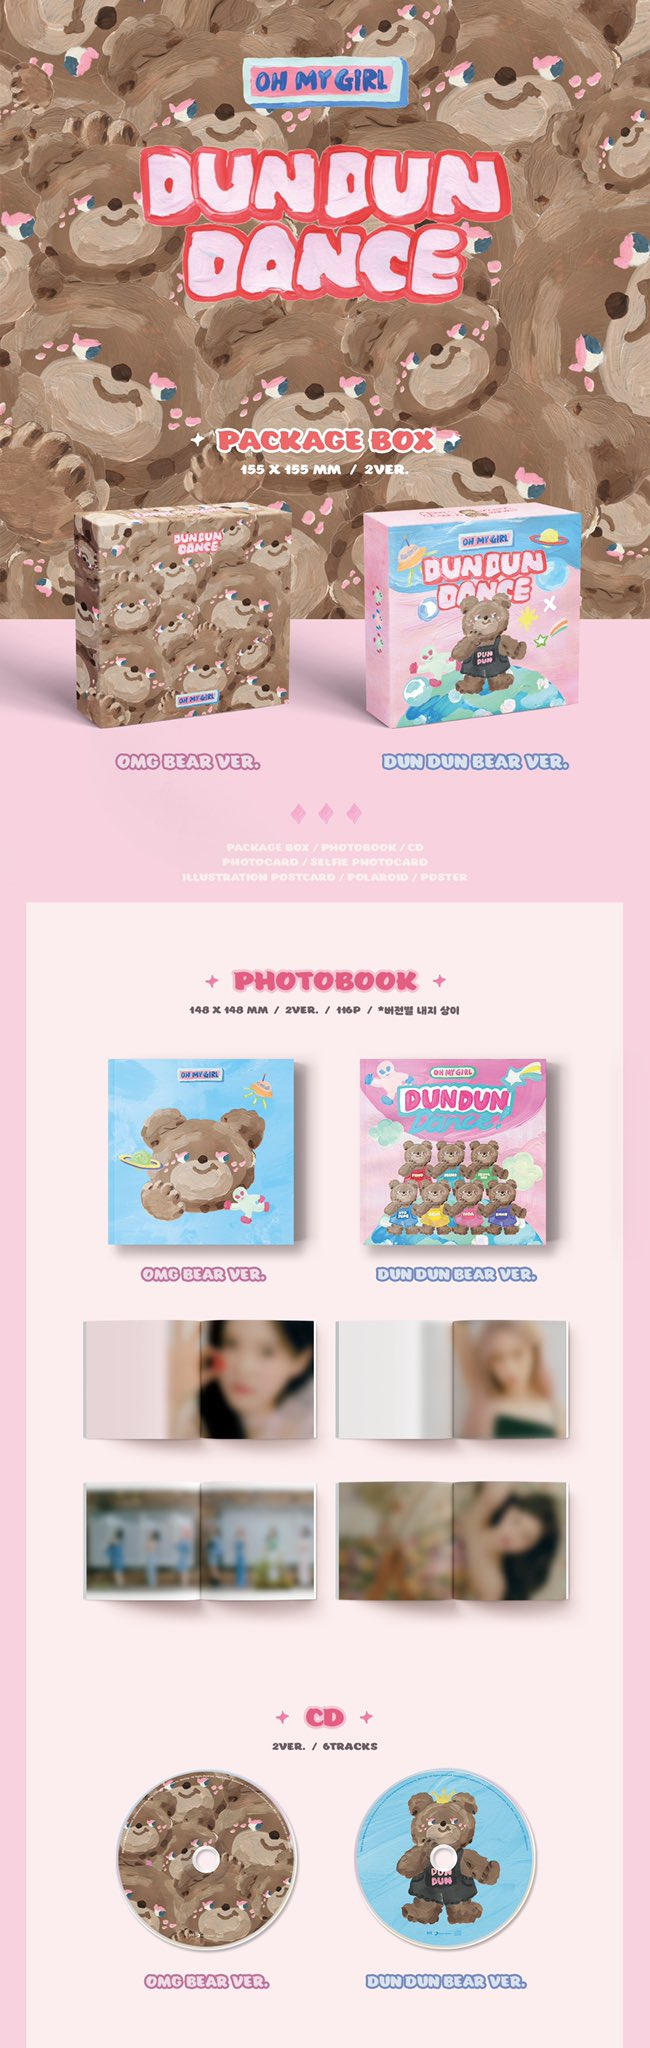 Oh My Girl Packaging Preview